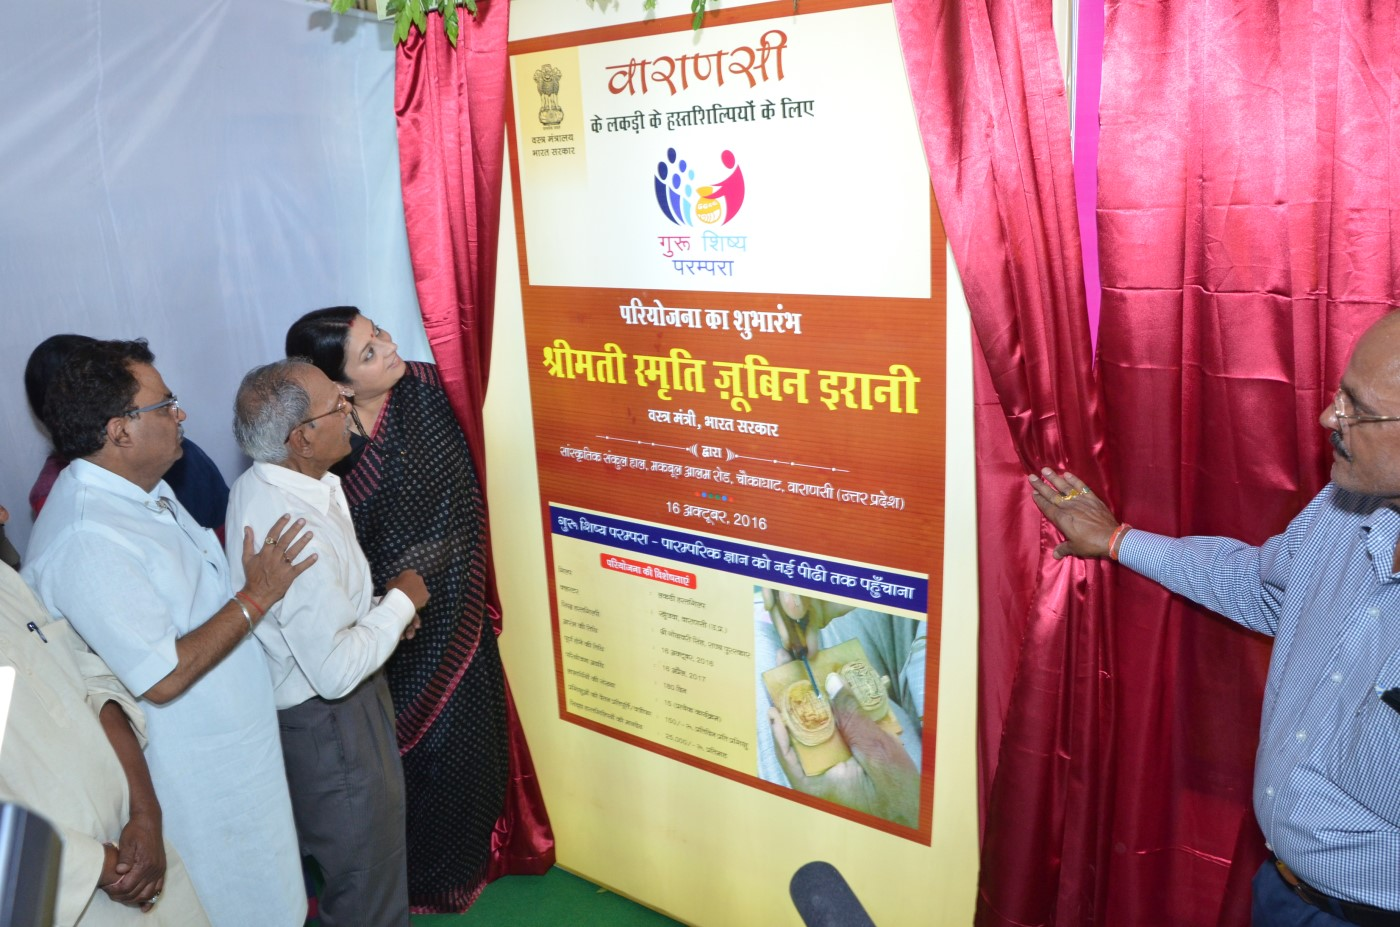 image of INAUGURATION OF DASTKAR CHAUPAL & LAUNCHING OF GURU SHISHYA PARAMPARA FOR THE ARTISANS OF VARANASI